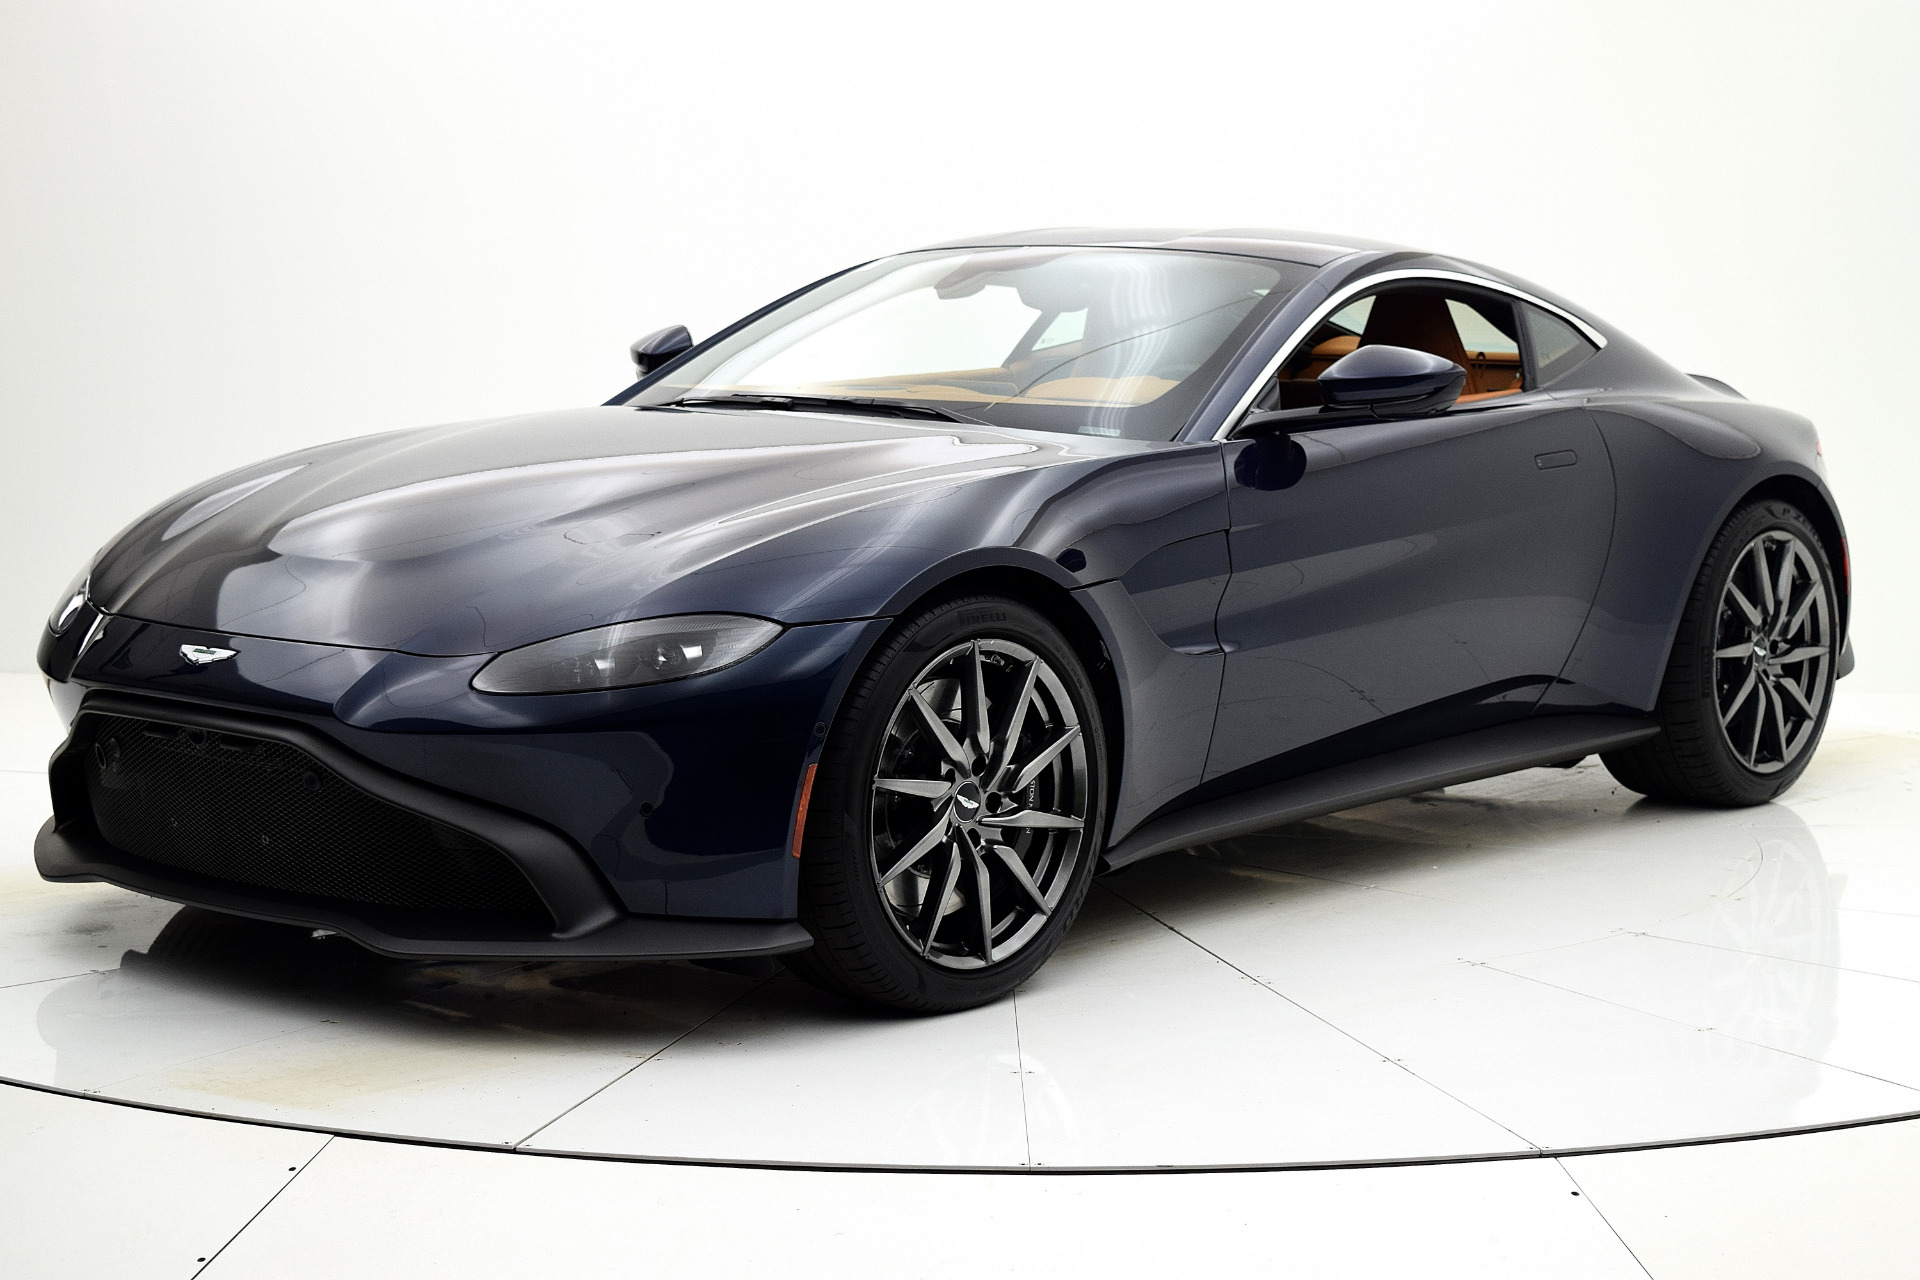 Aston Martin Vantage 2019 For Sale $161407 Stock Number 19A129